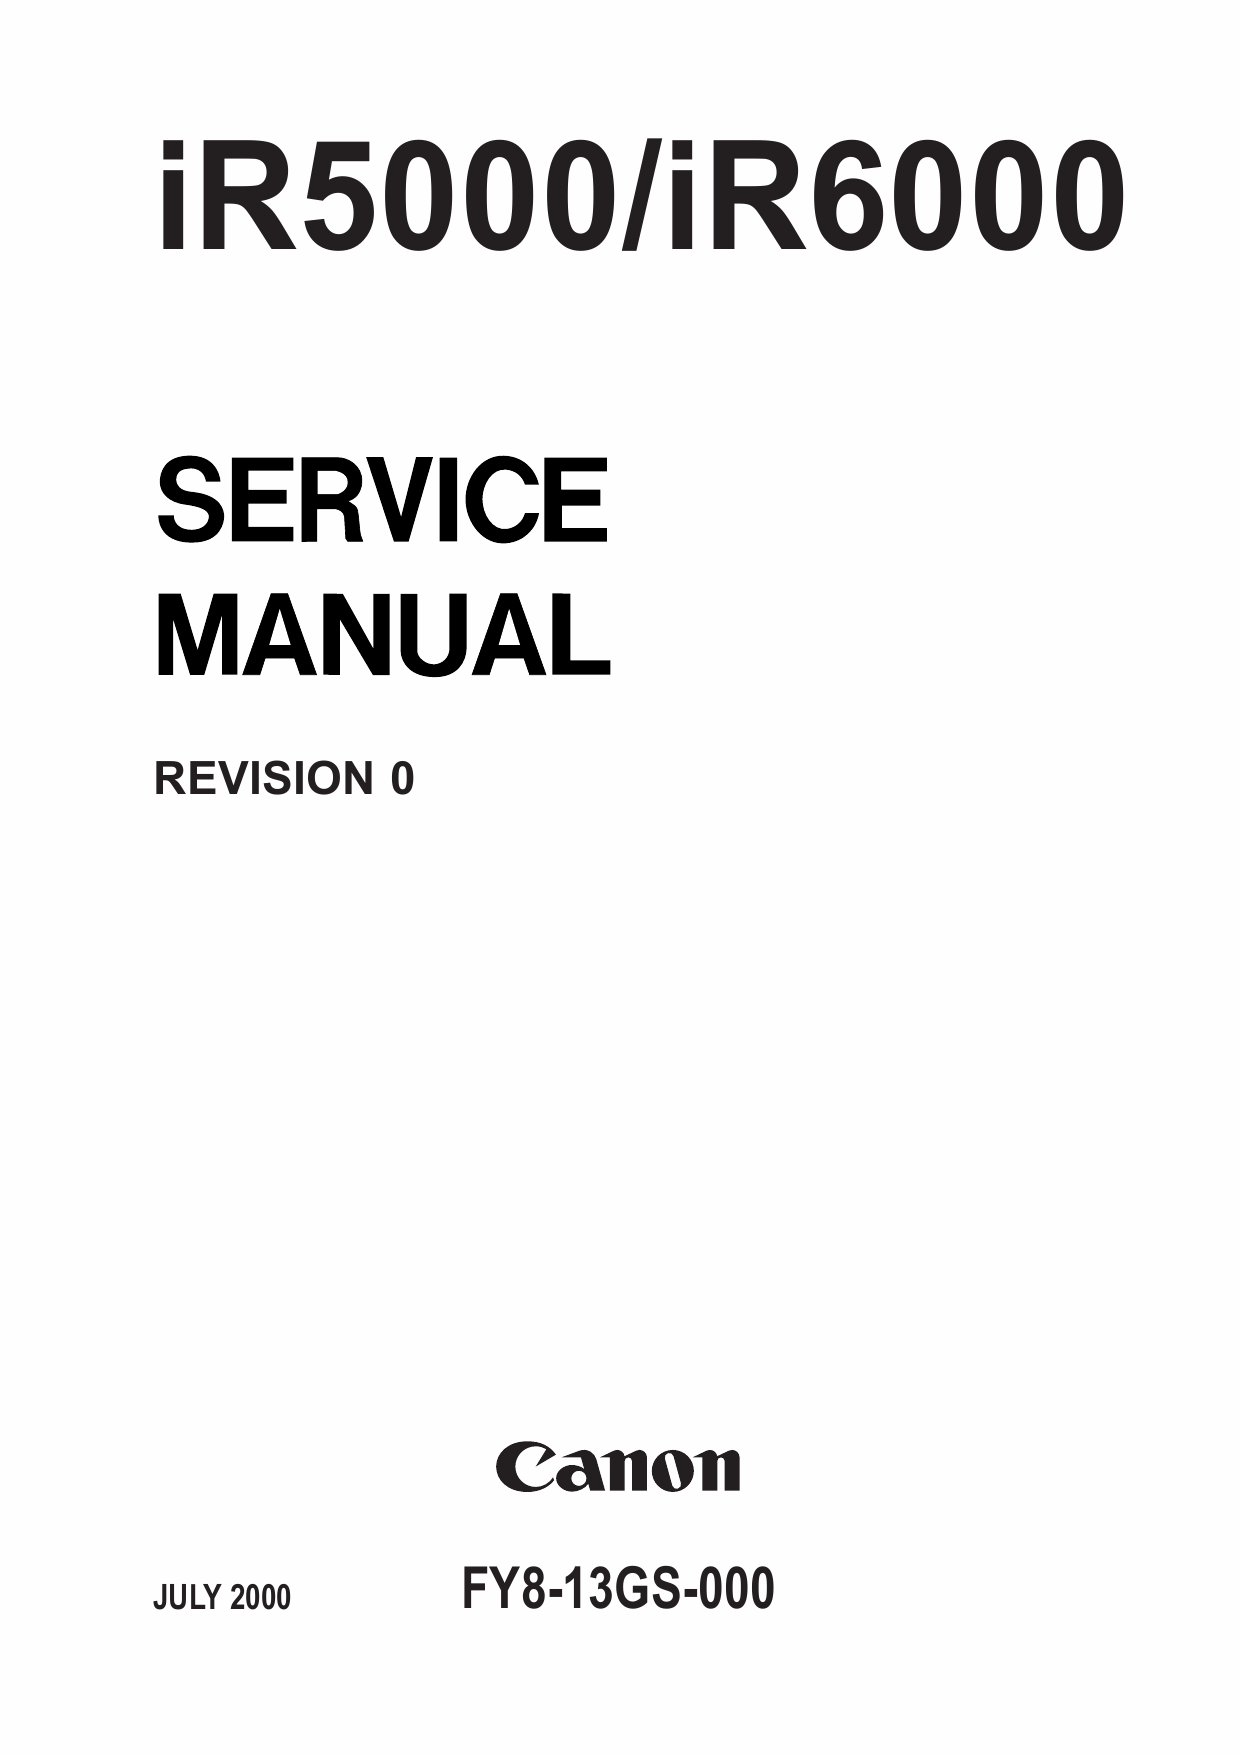 Canon imageRUNNER iR 5000 6000 Parts and Service Manual